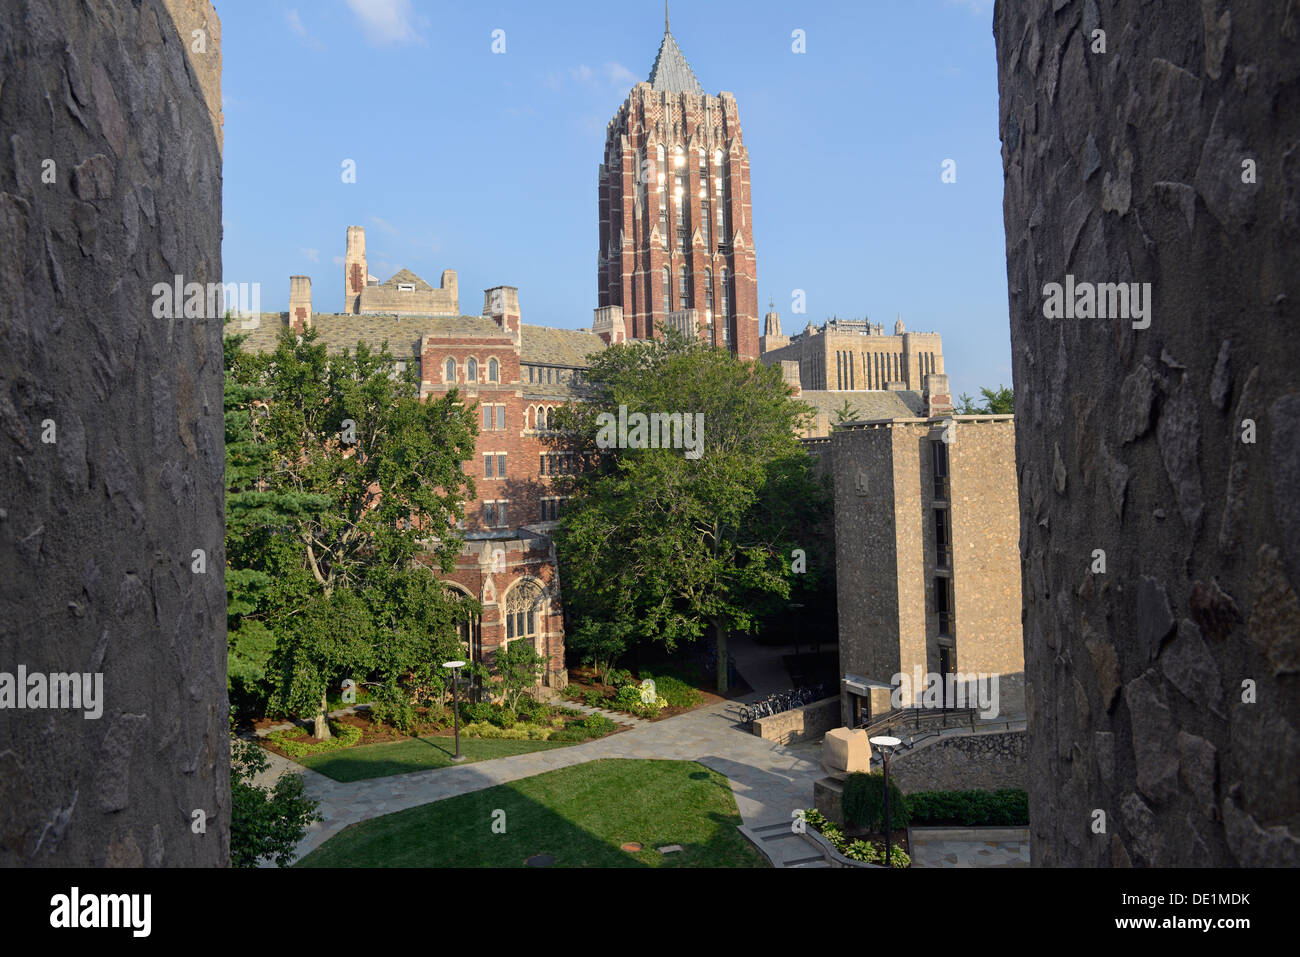 Yale University campus. Morse Residential Colllege.  Hall of Graduate Studies tower in middle. - Stock Image